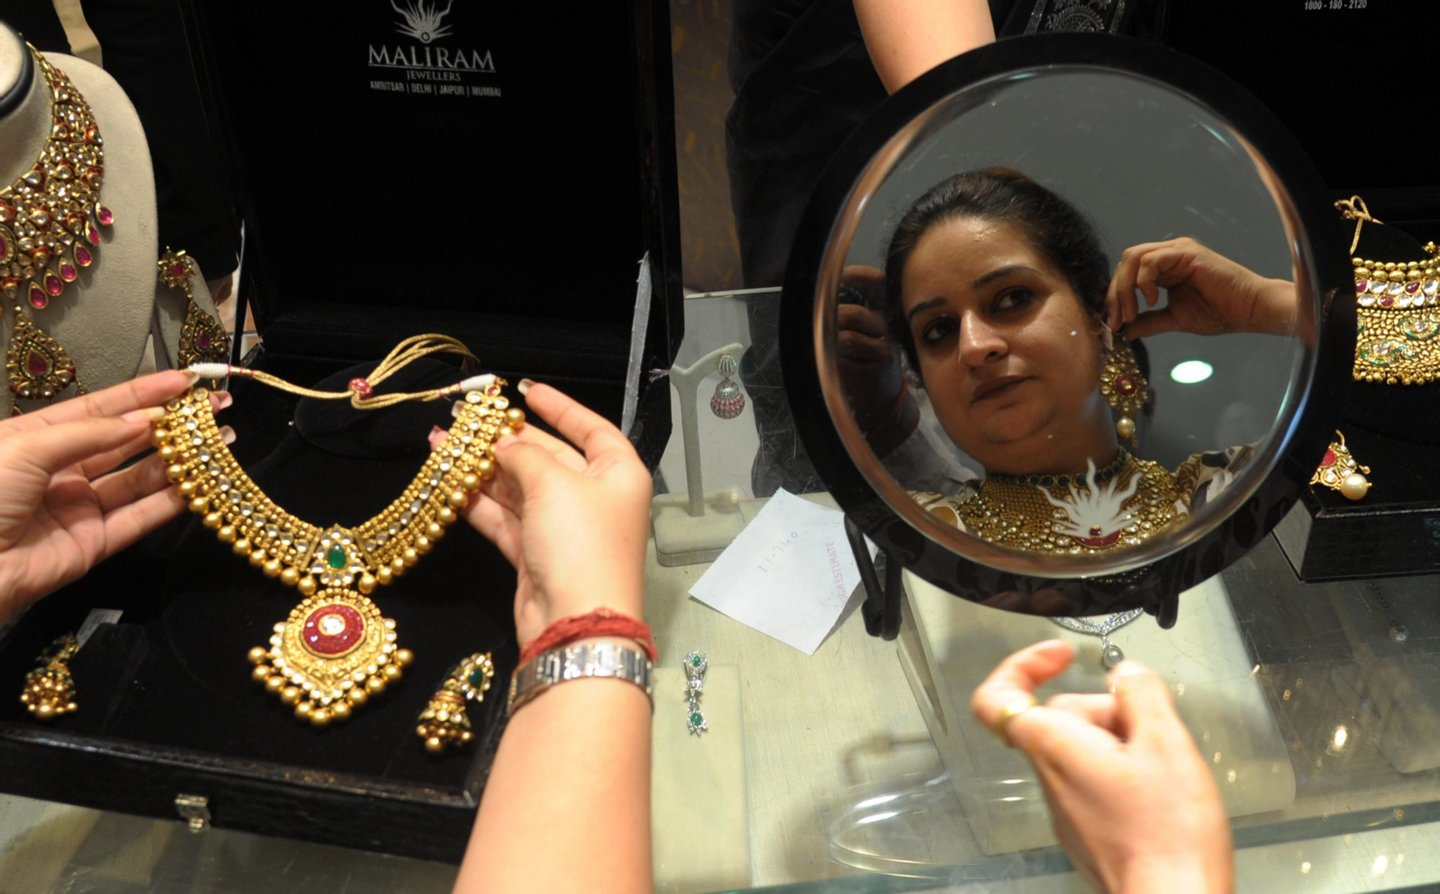 Indian shoppers try on gold jewellery at a jewellery store on Dhanteras in Amritsar on October 21, 2014. Dhanteras, which happens two days before the Hindu festival Diwali, is seen as an auspicious day to make purchases. AFP PHOTO/NARINDER NANU (Photo credit should read NARINDER NANU/AFP/Getty Images)